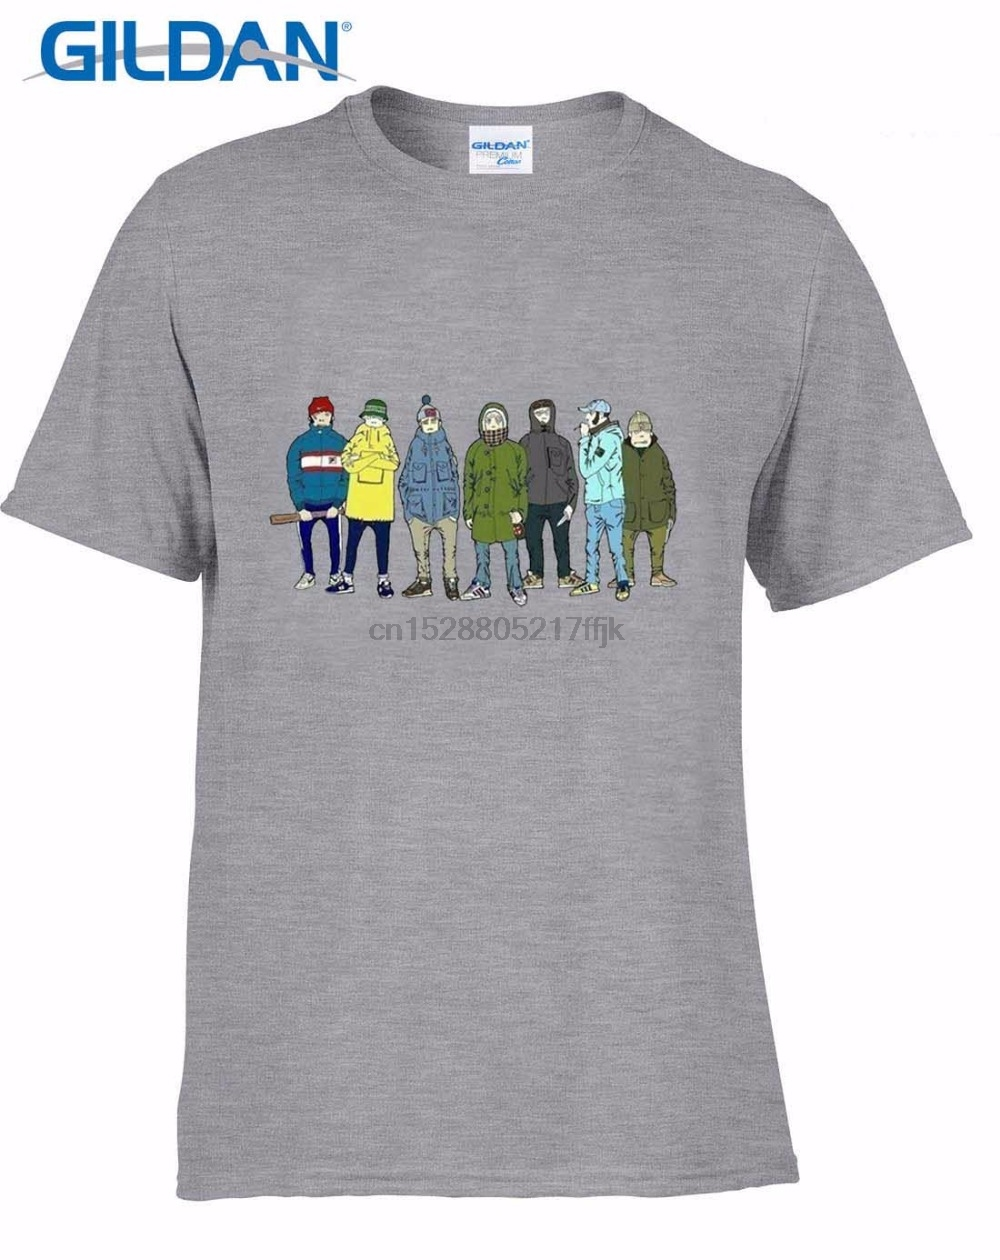 MADE FOR STANDING NOT RUNNING FOOTBALL TERRACES 80/'S HOOLIGANS FASHION S 5XL